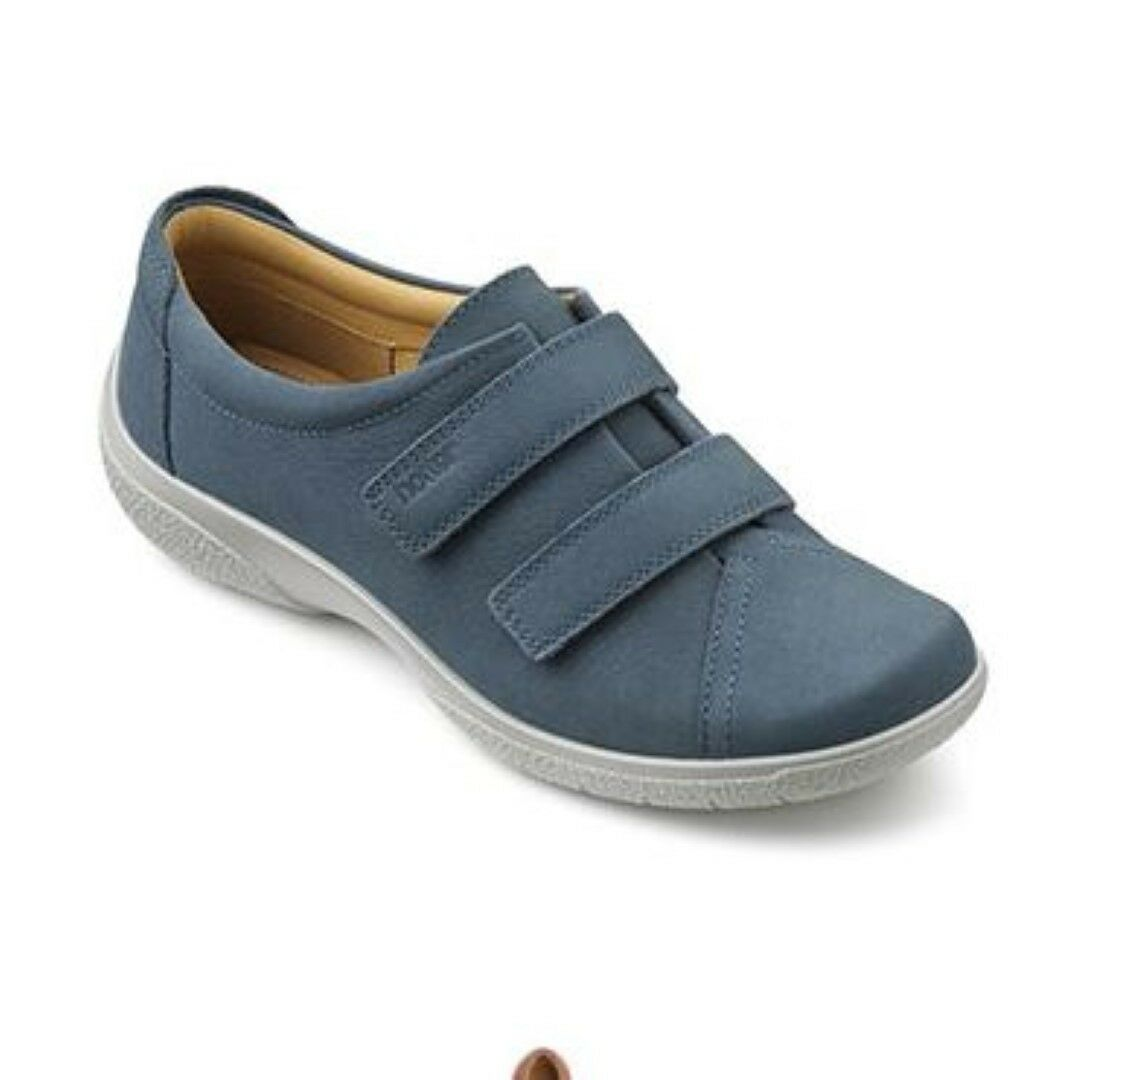 Hotter Damenschuhe Leap Extra Wide Blau River Nubuck Schuhes UK 5 EU 38 LN36 29